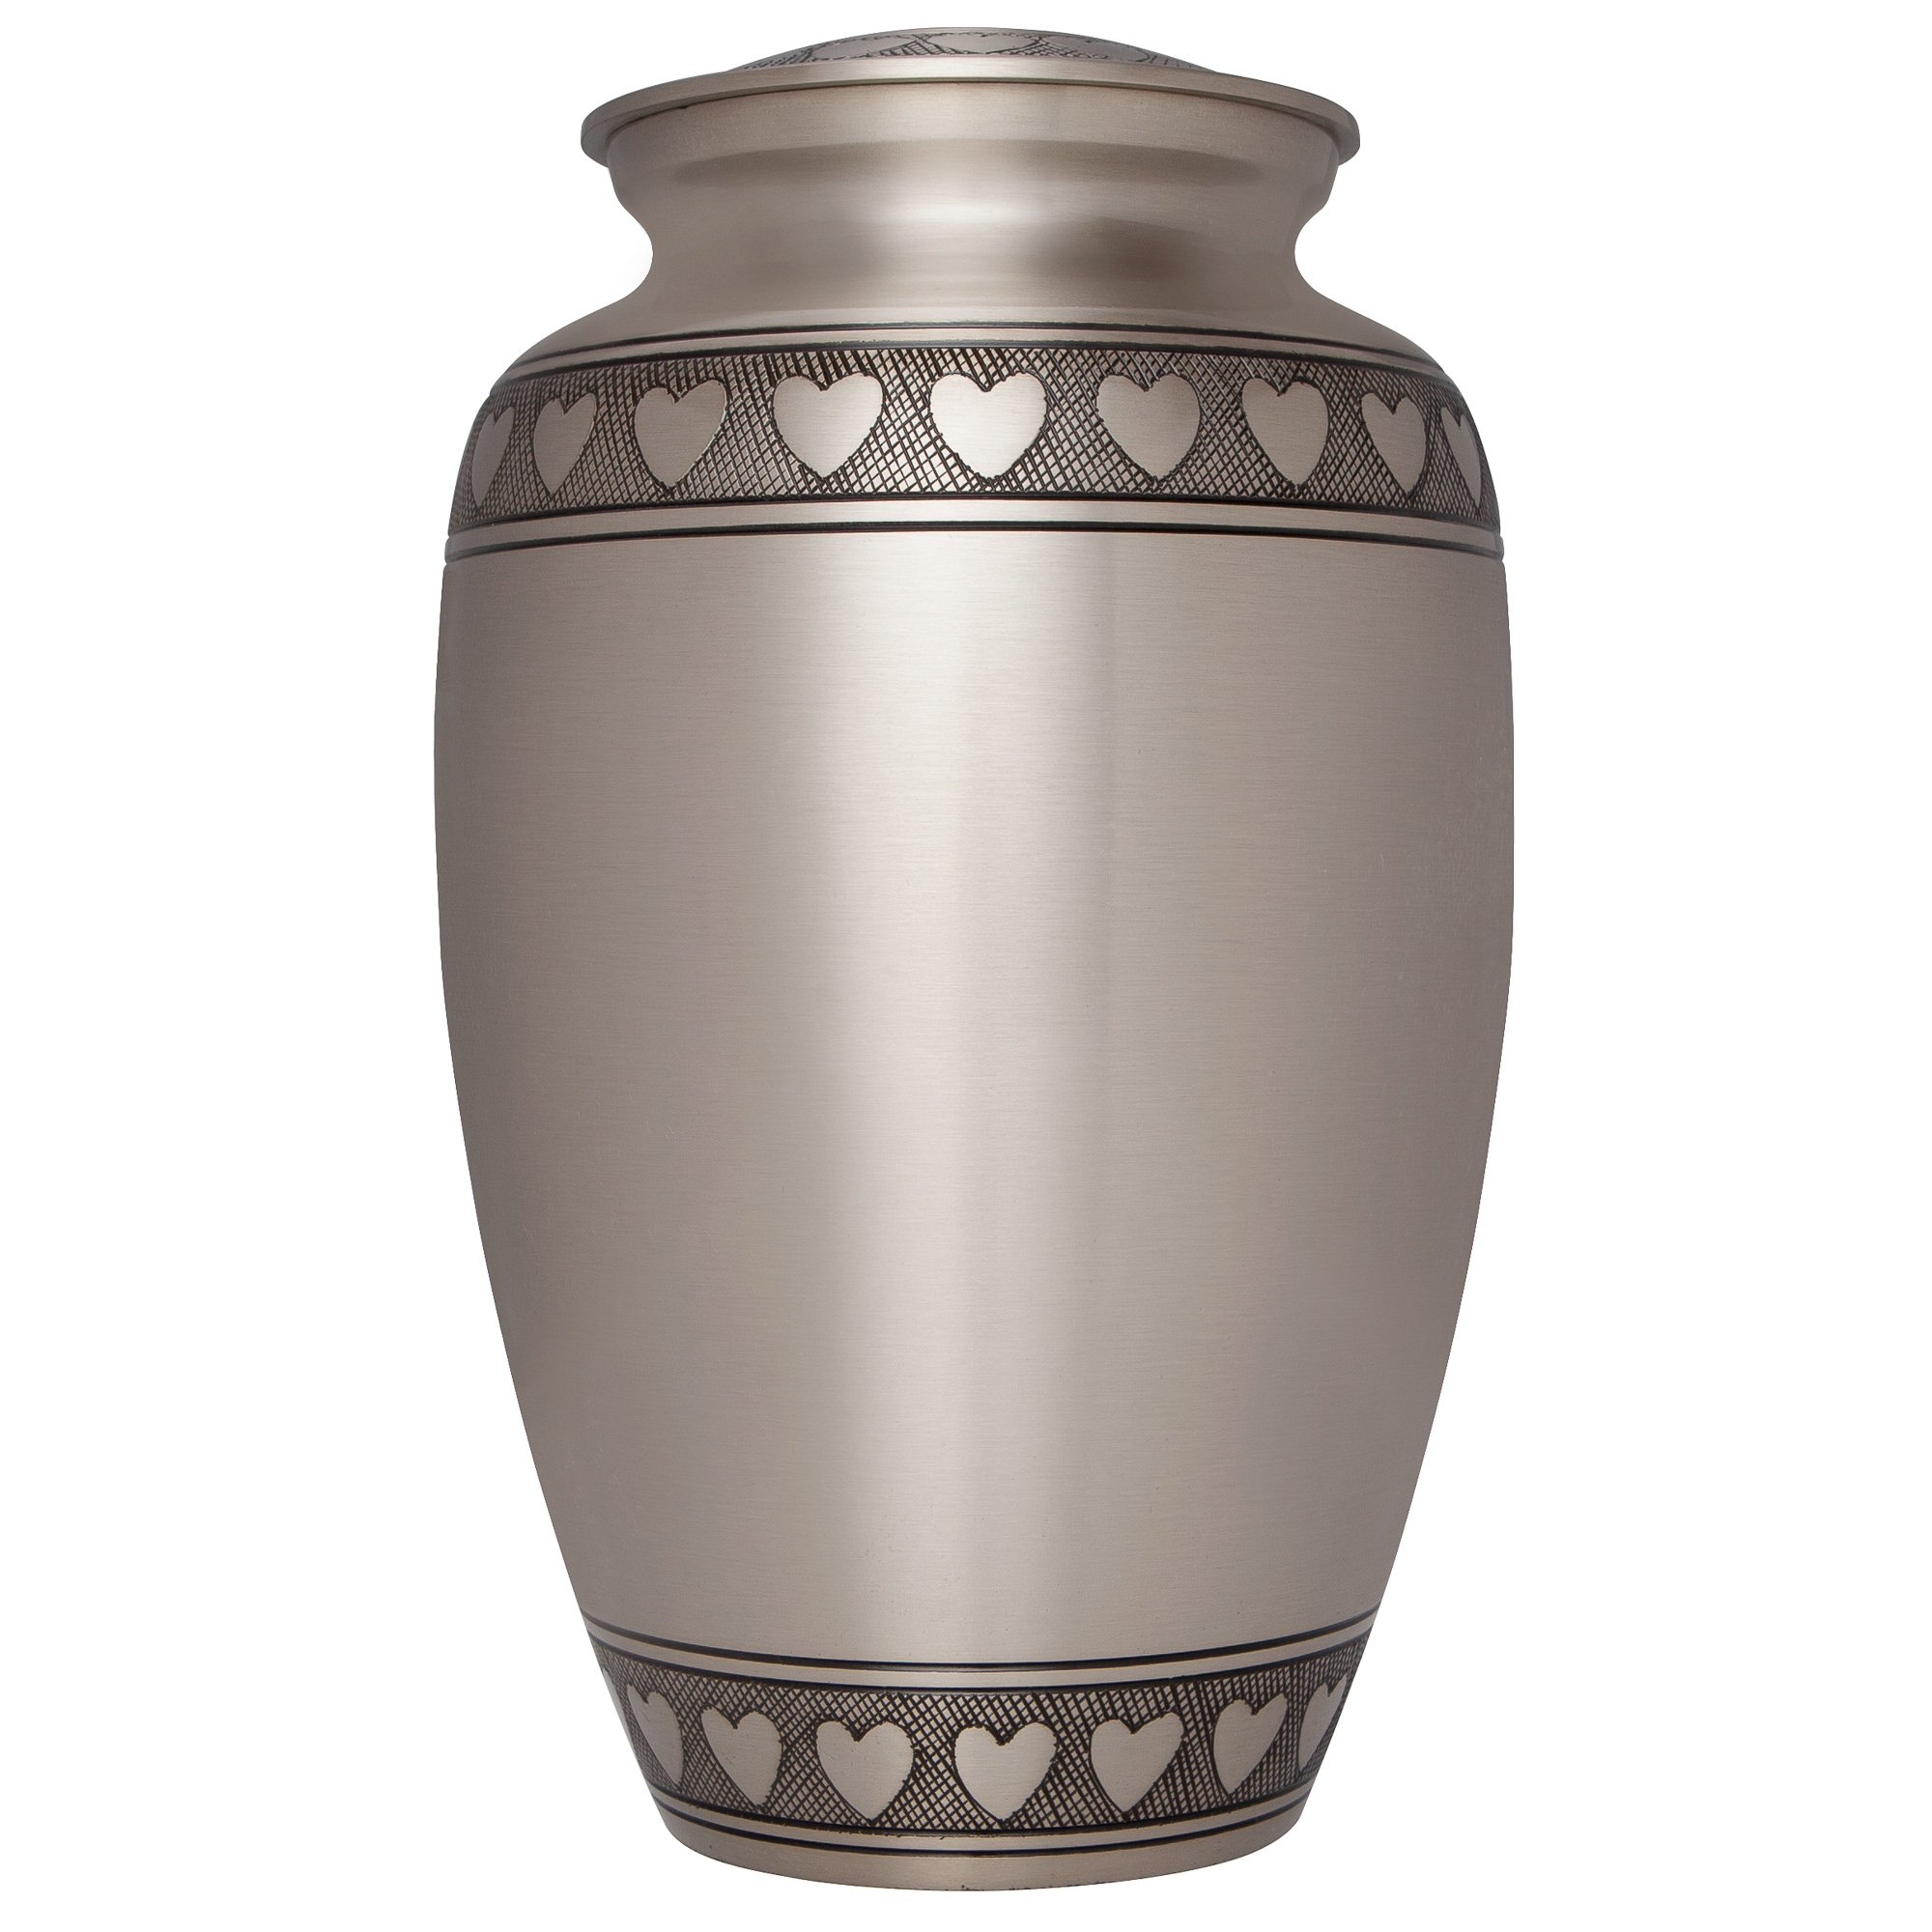 Liliane Memorials Heart Silver Funeral Urn by Cremation Urn for Human Ashes - Hand Made in Brass - Suitable for Cemetery Burial or Niche - Large Size fits remains of Adults up to 200 lbs- Corazones by Liliane Memorials